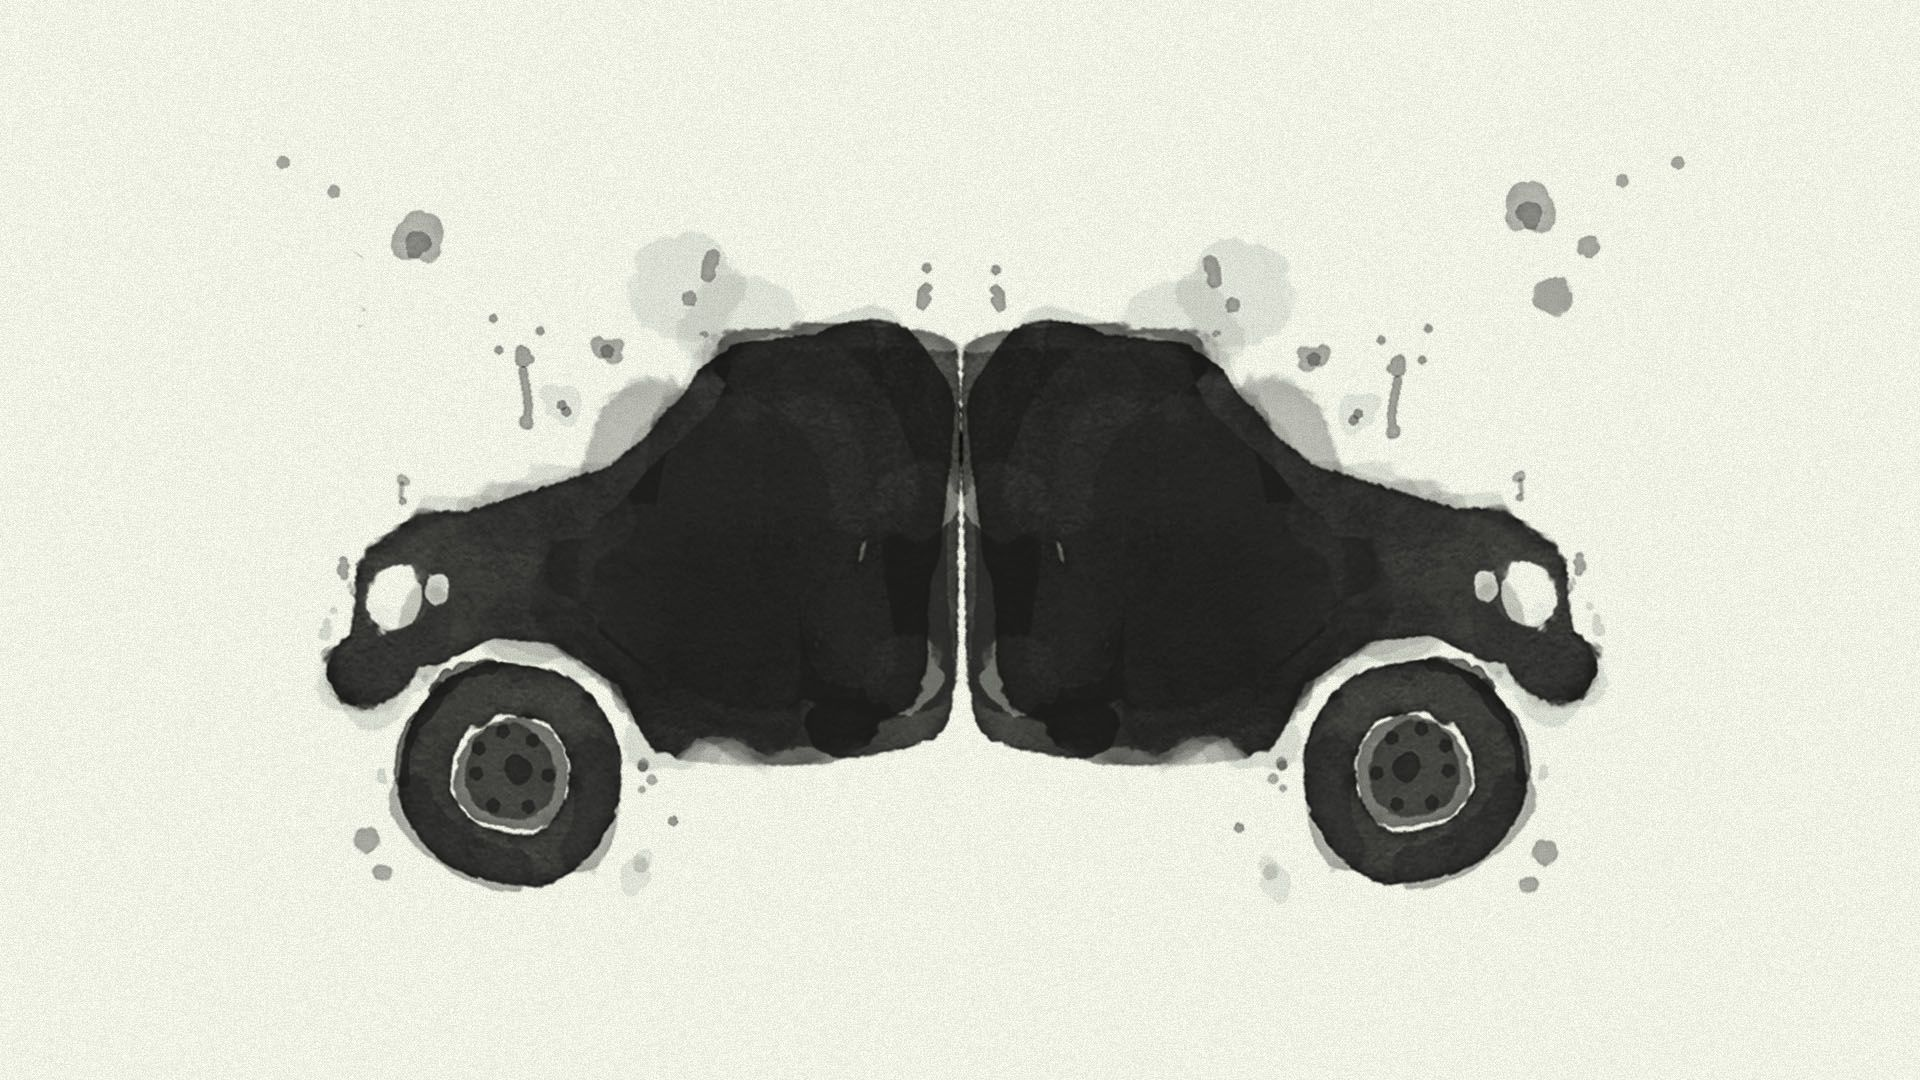 Illustration of a Rorschach test in the shape of a car